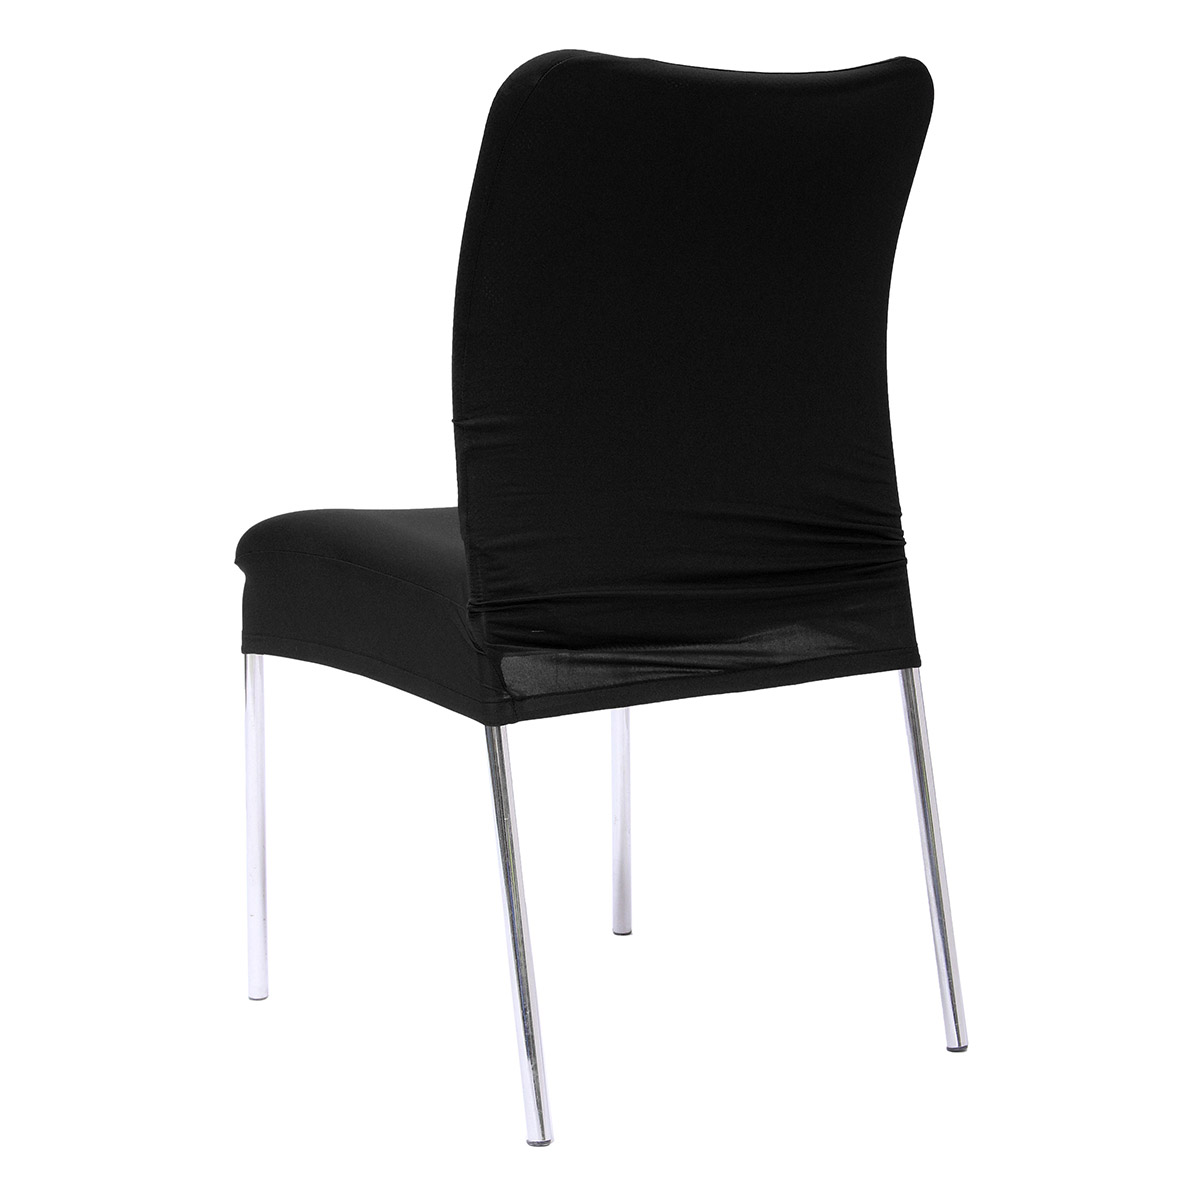 removable chair covers